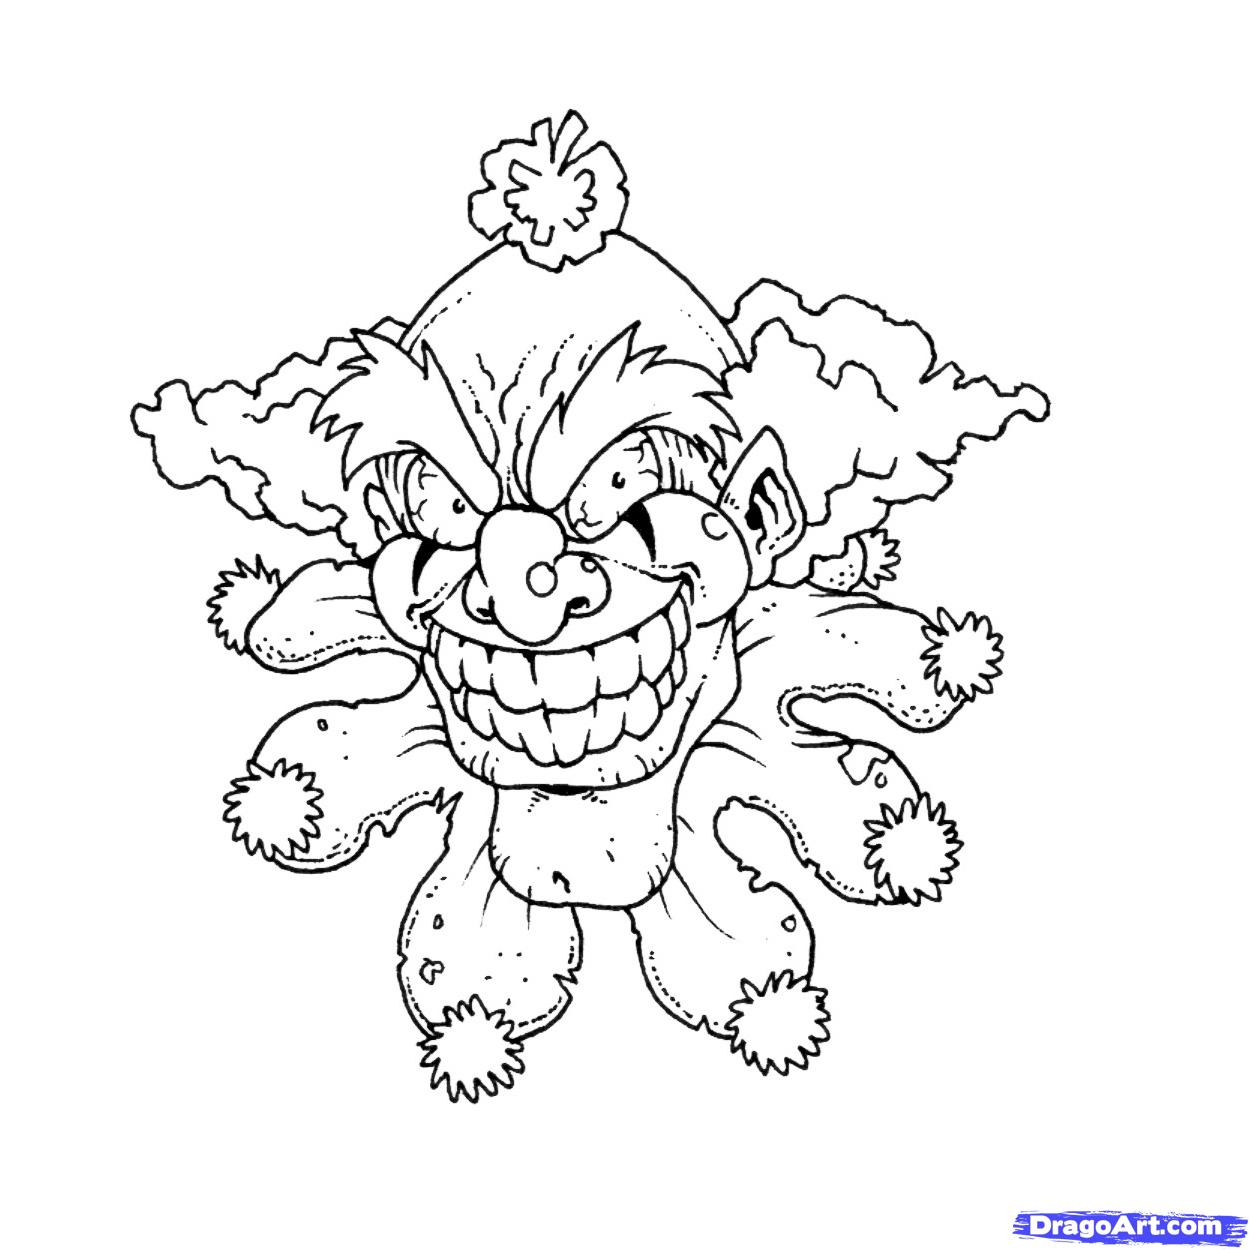 Free Horror Coloring Pages - High Quality Coloring Pages